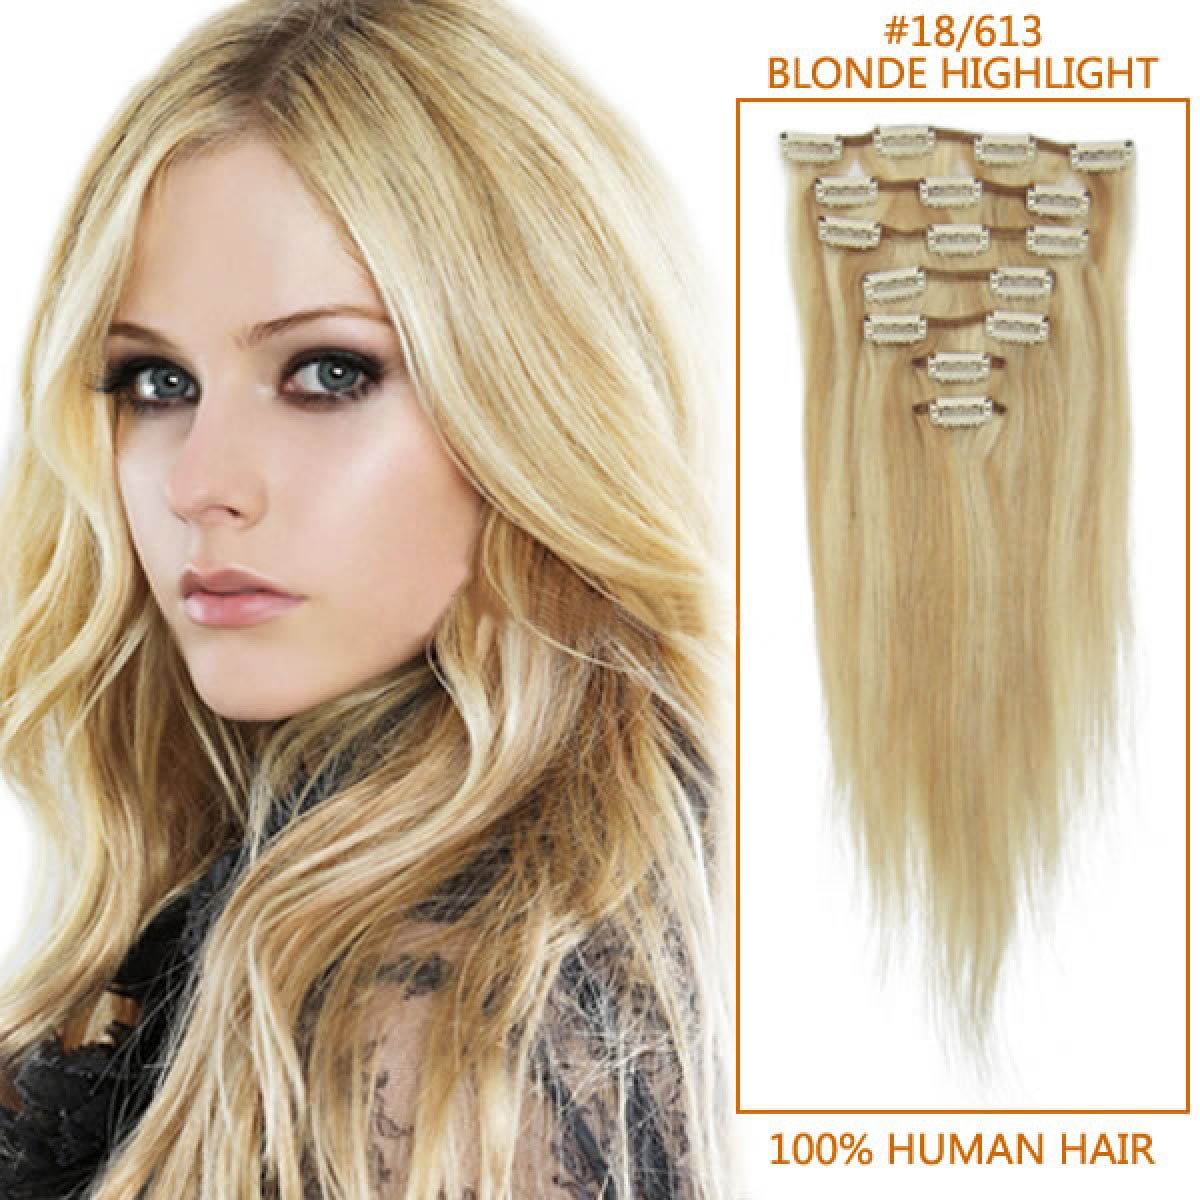 24 Inch 18613 Blonde Highlight Clip In Human Hair Extensions 10pcs